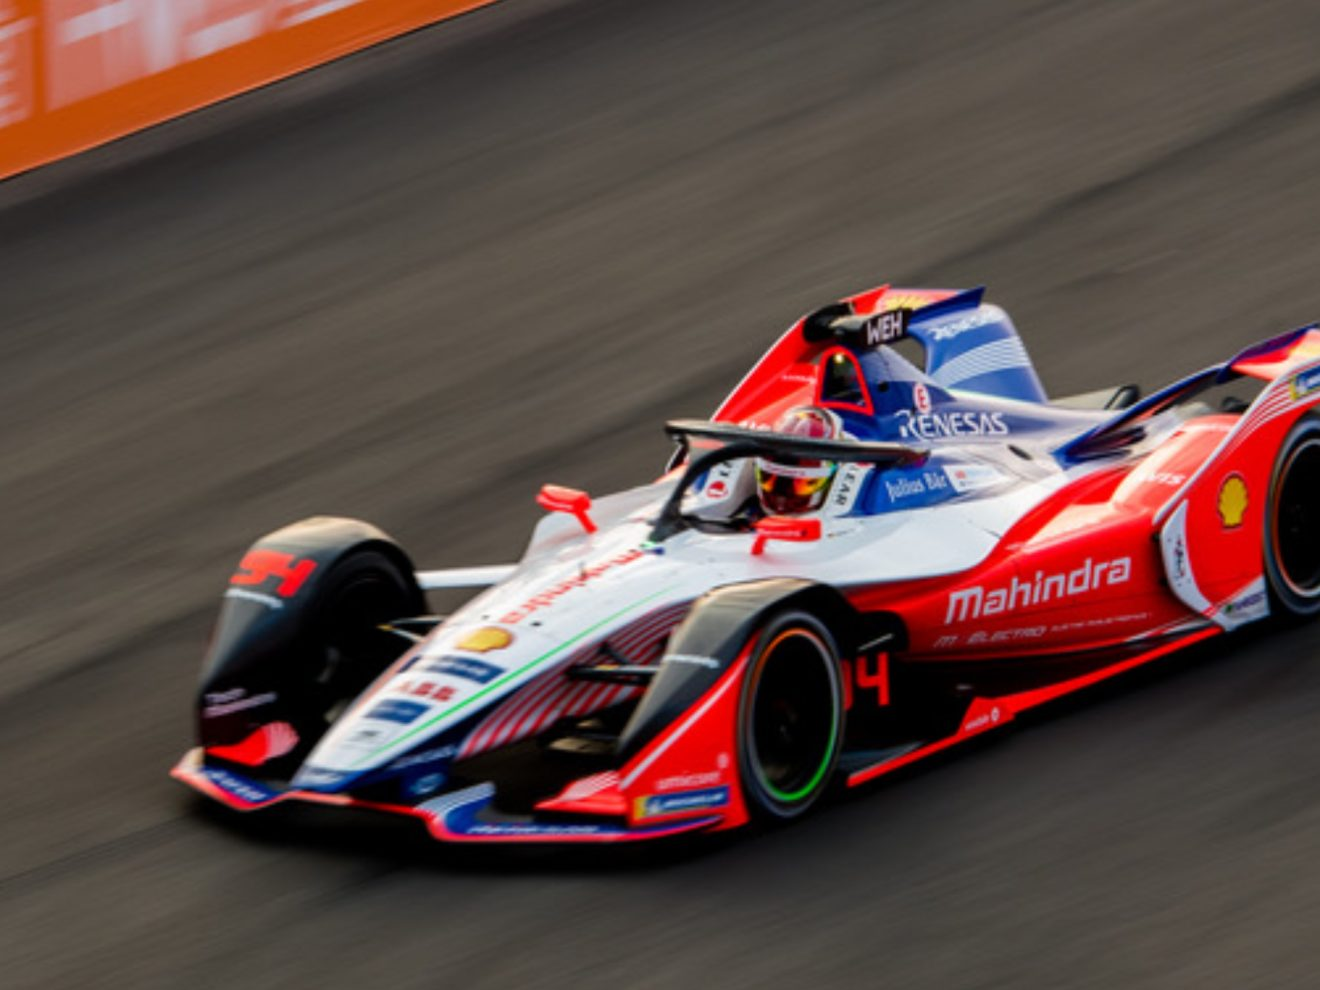 Points Haul and blistering race pace in Monaco for Mahindra Racing